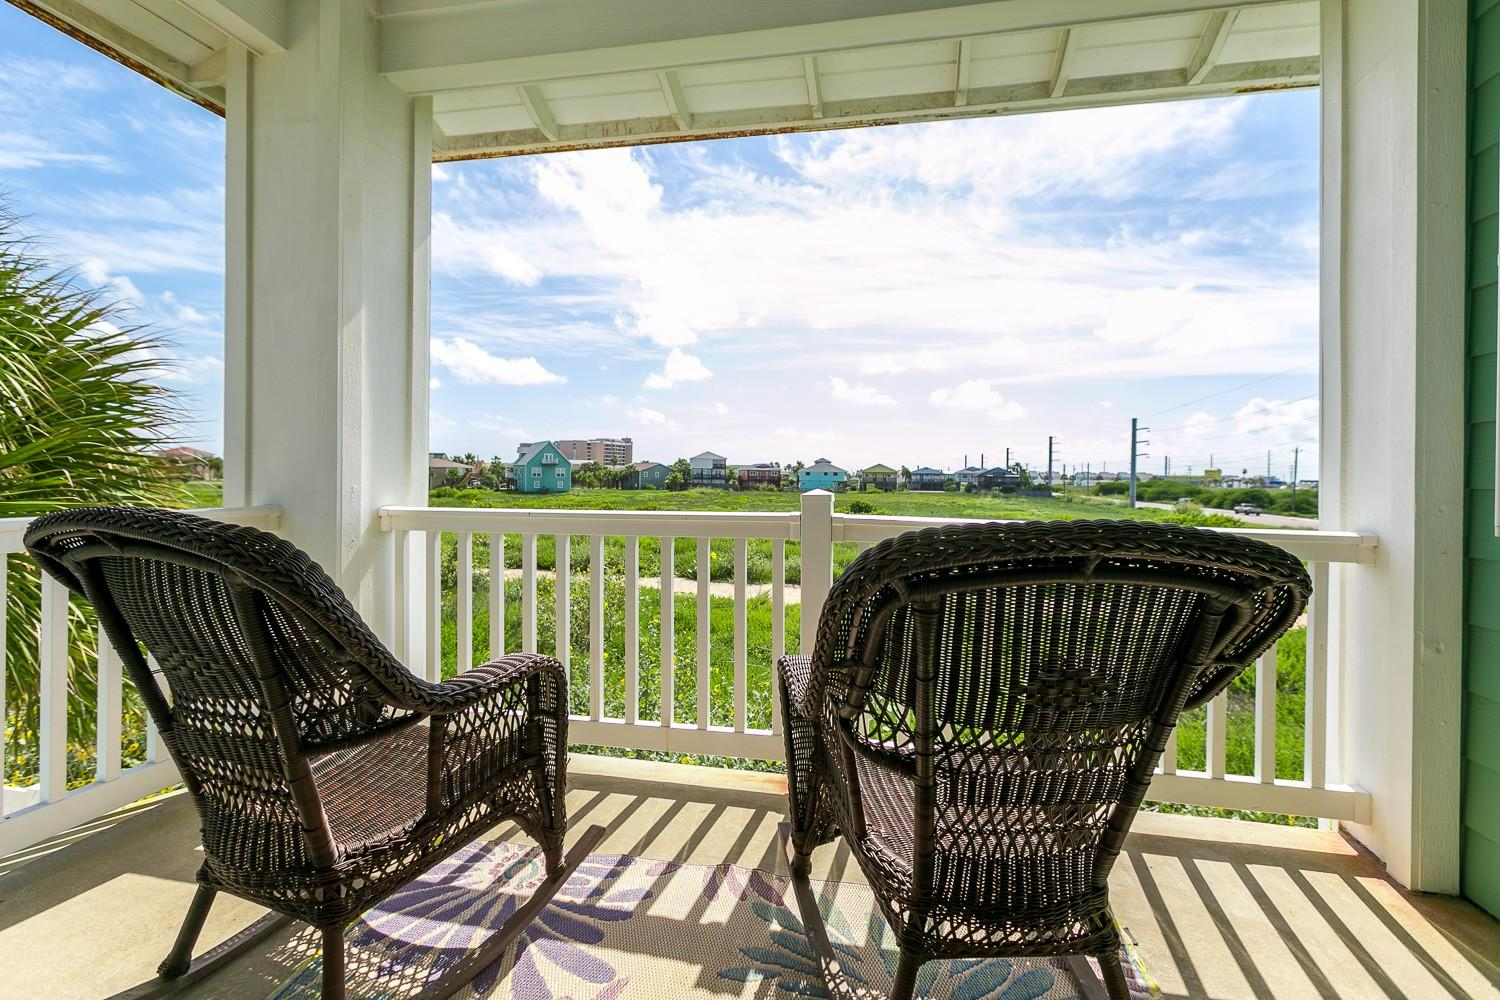 Welcome to Port Aransas! Sip a crisp beverage and relax on the covered balcony.